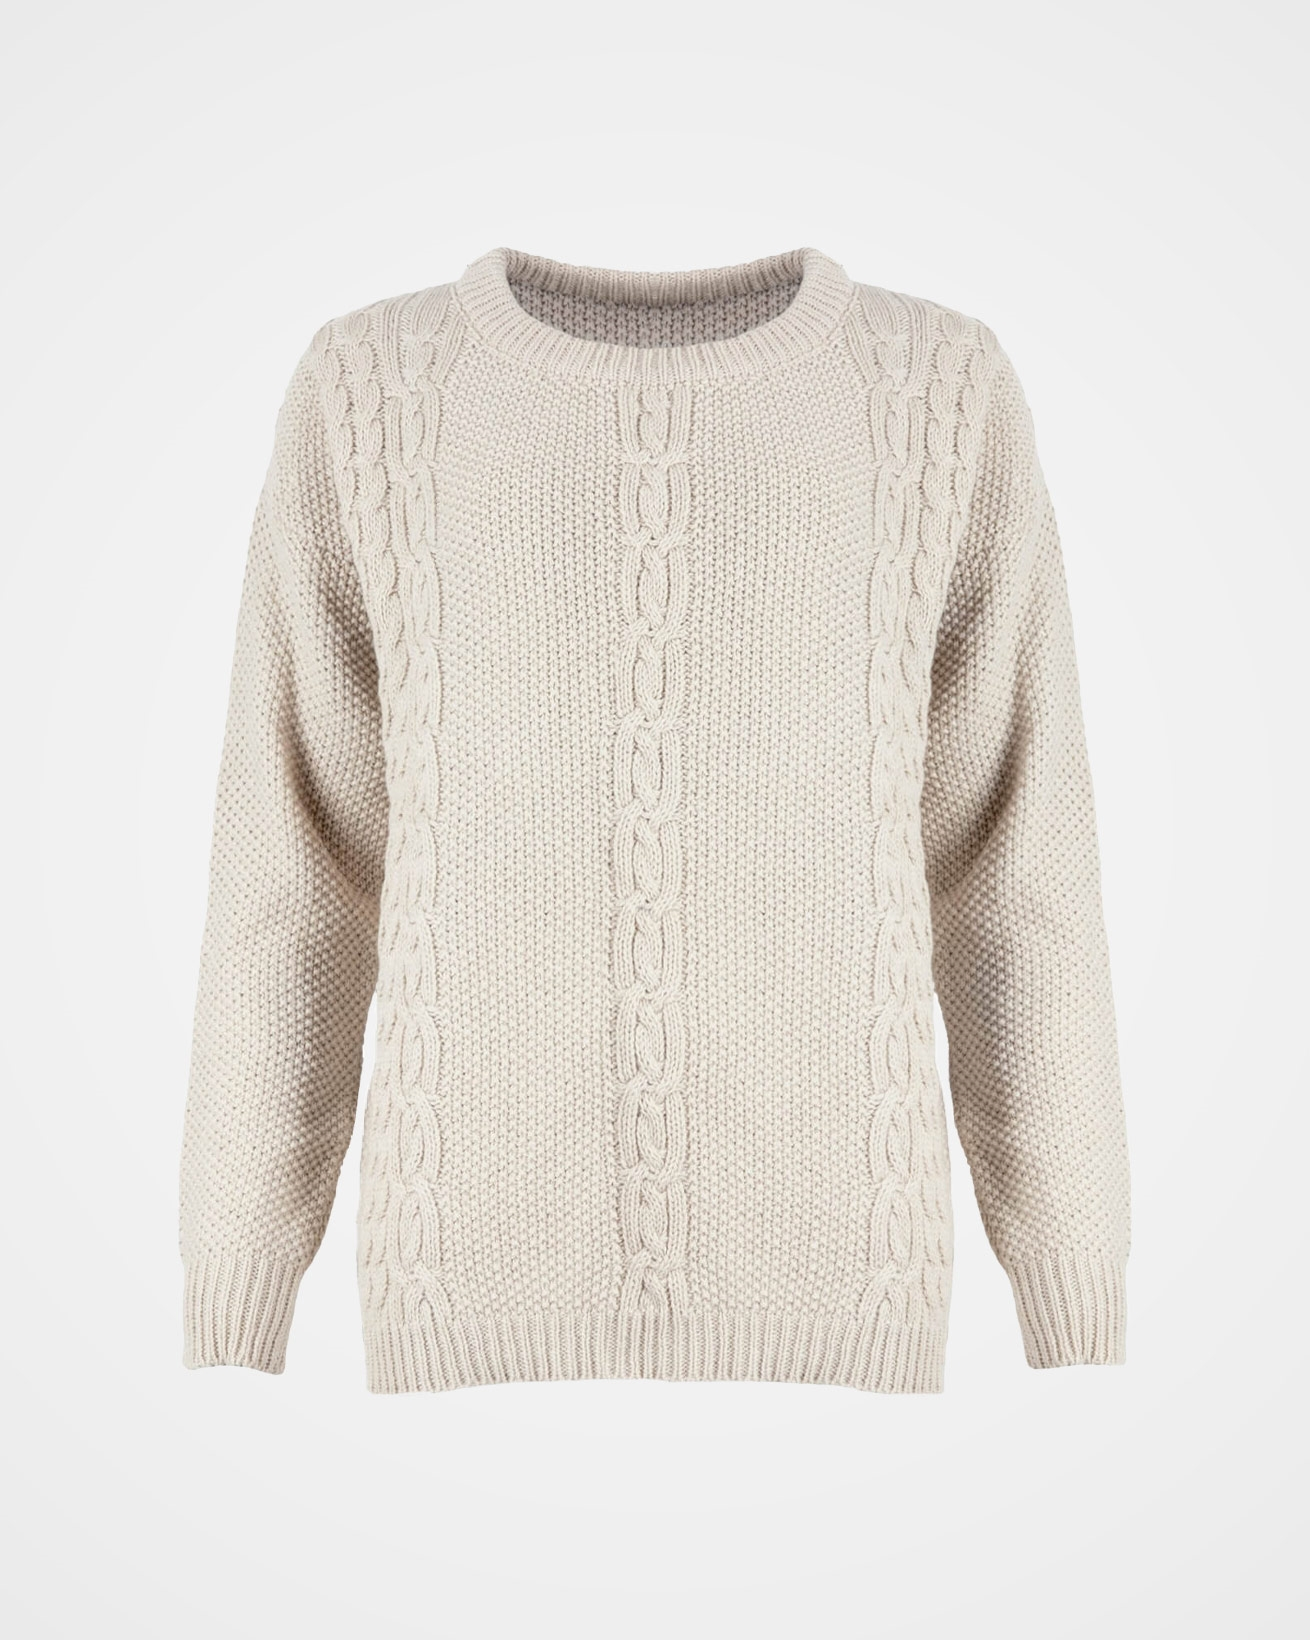 7563_cable-crew-neck-jumper_almond_front.jpg